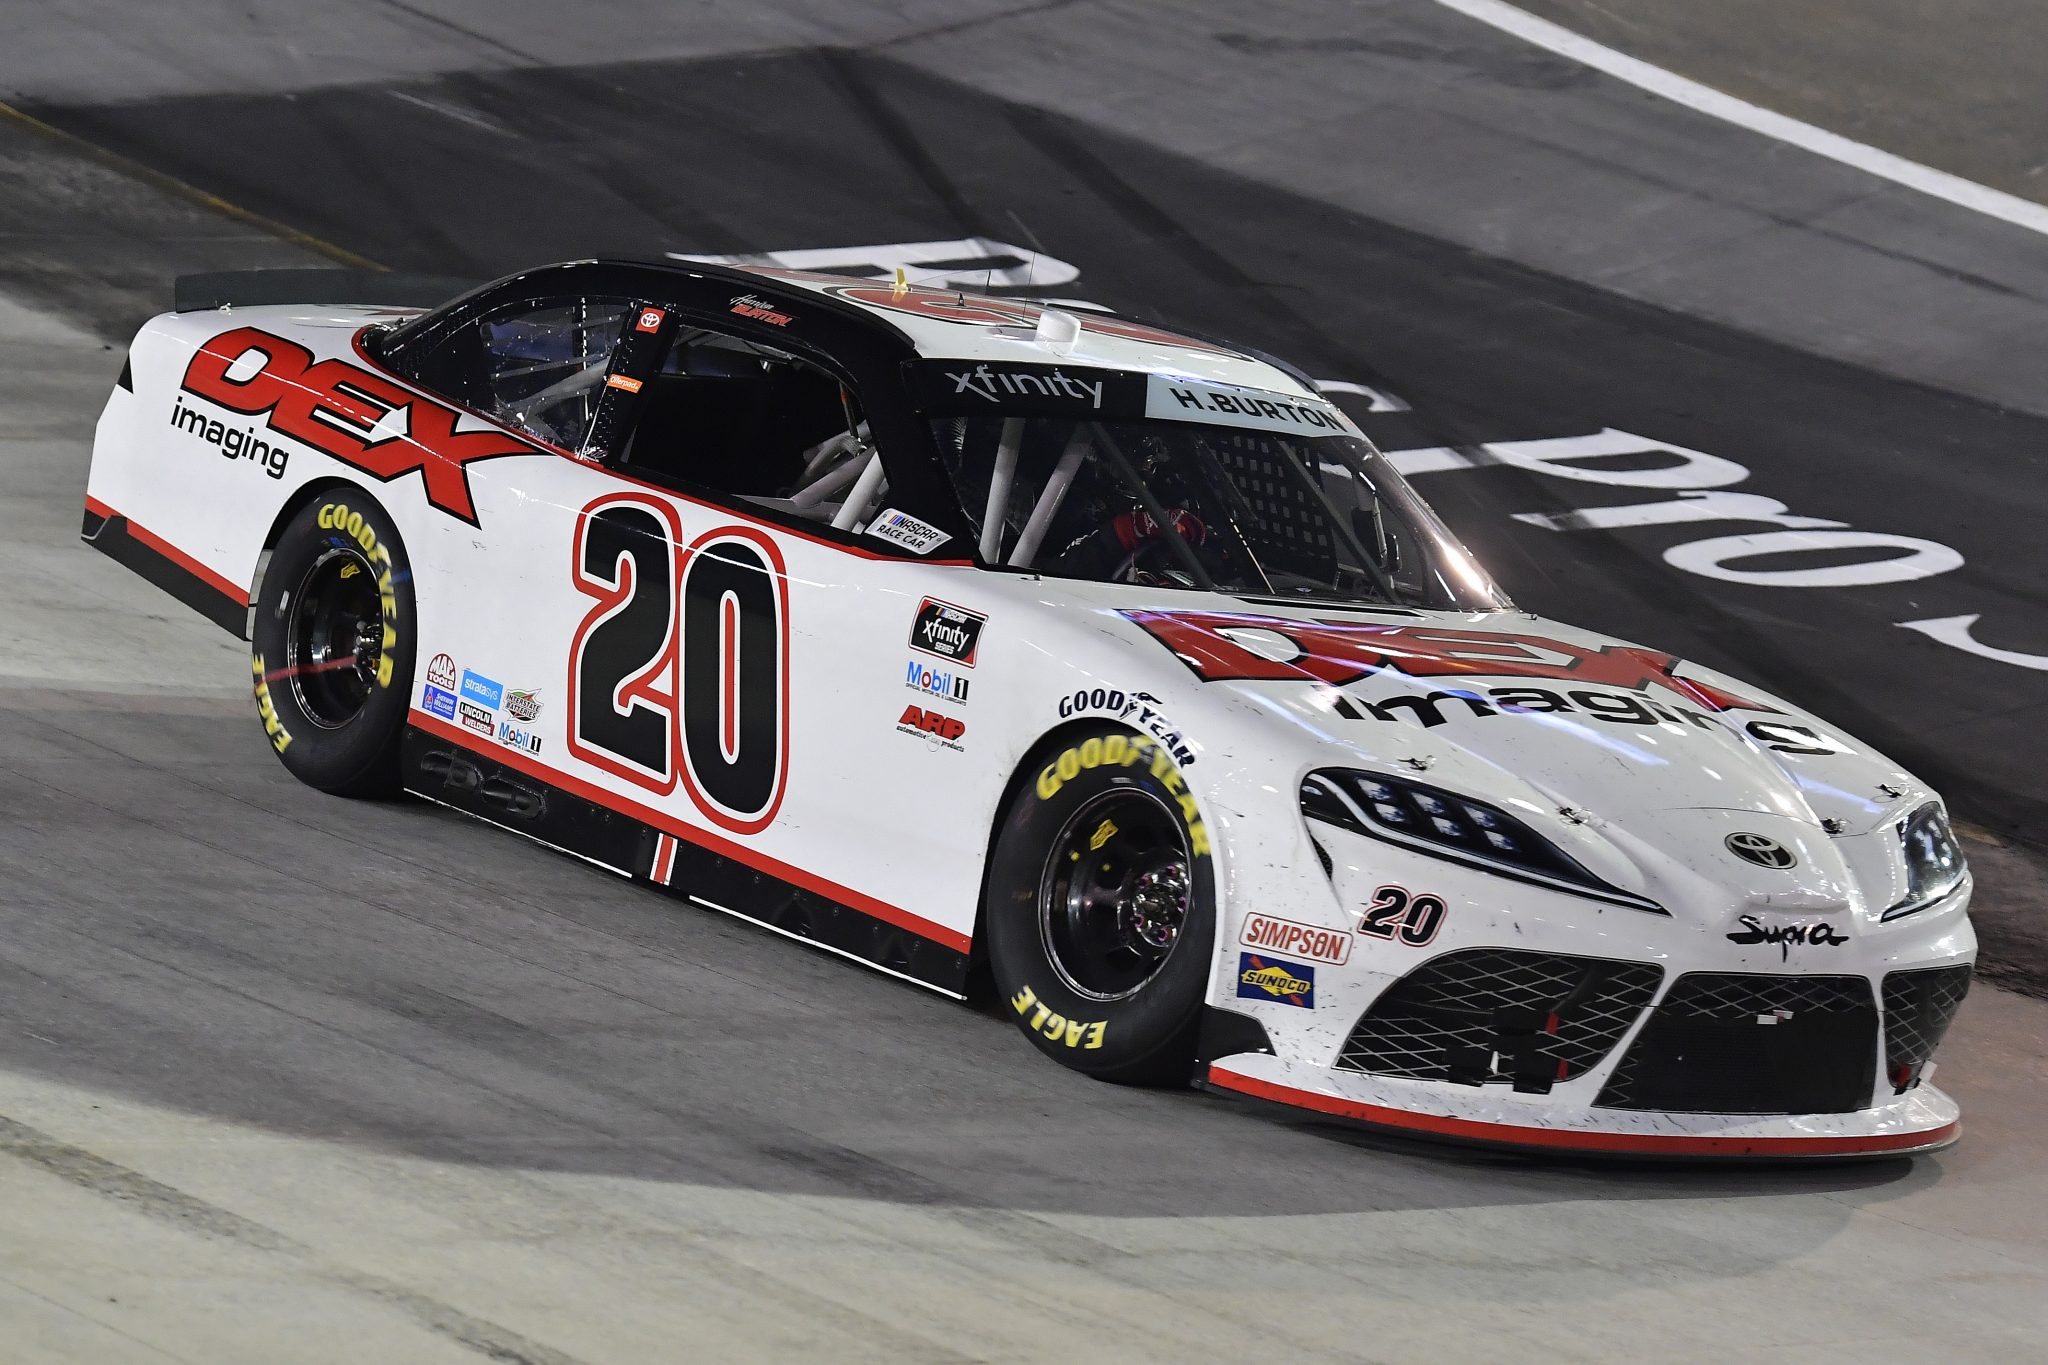 BRISTOL, TENNESSEE - SEPTEMBER 17: Harrison Burton, driver of the #20 DEX Imaging Toyota, drives during the NASCAR Xfinity Series Food City 300 at Bristol Motor Speedway on September 17, 2021 in Bristol, Tennessee. (Photo by Logan Riely/Getty Images) | Getty Images